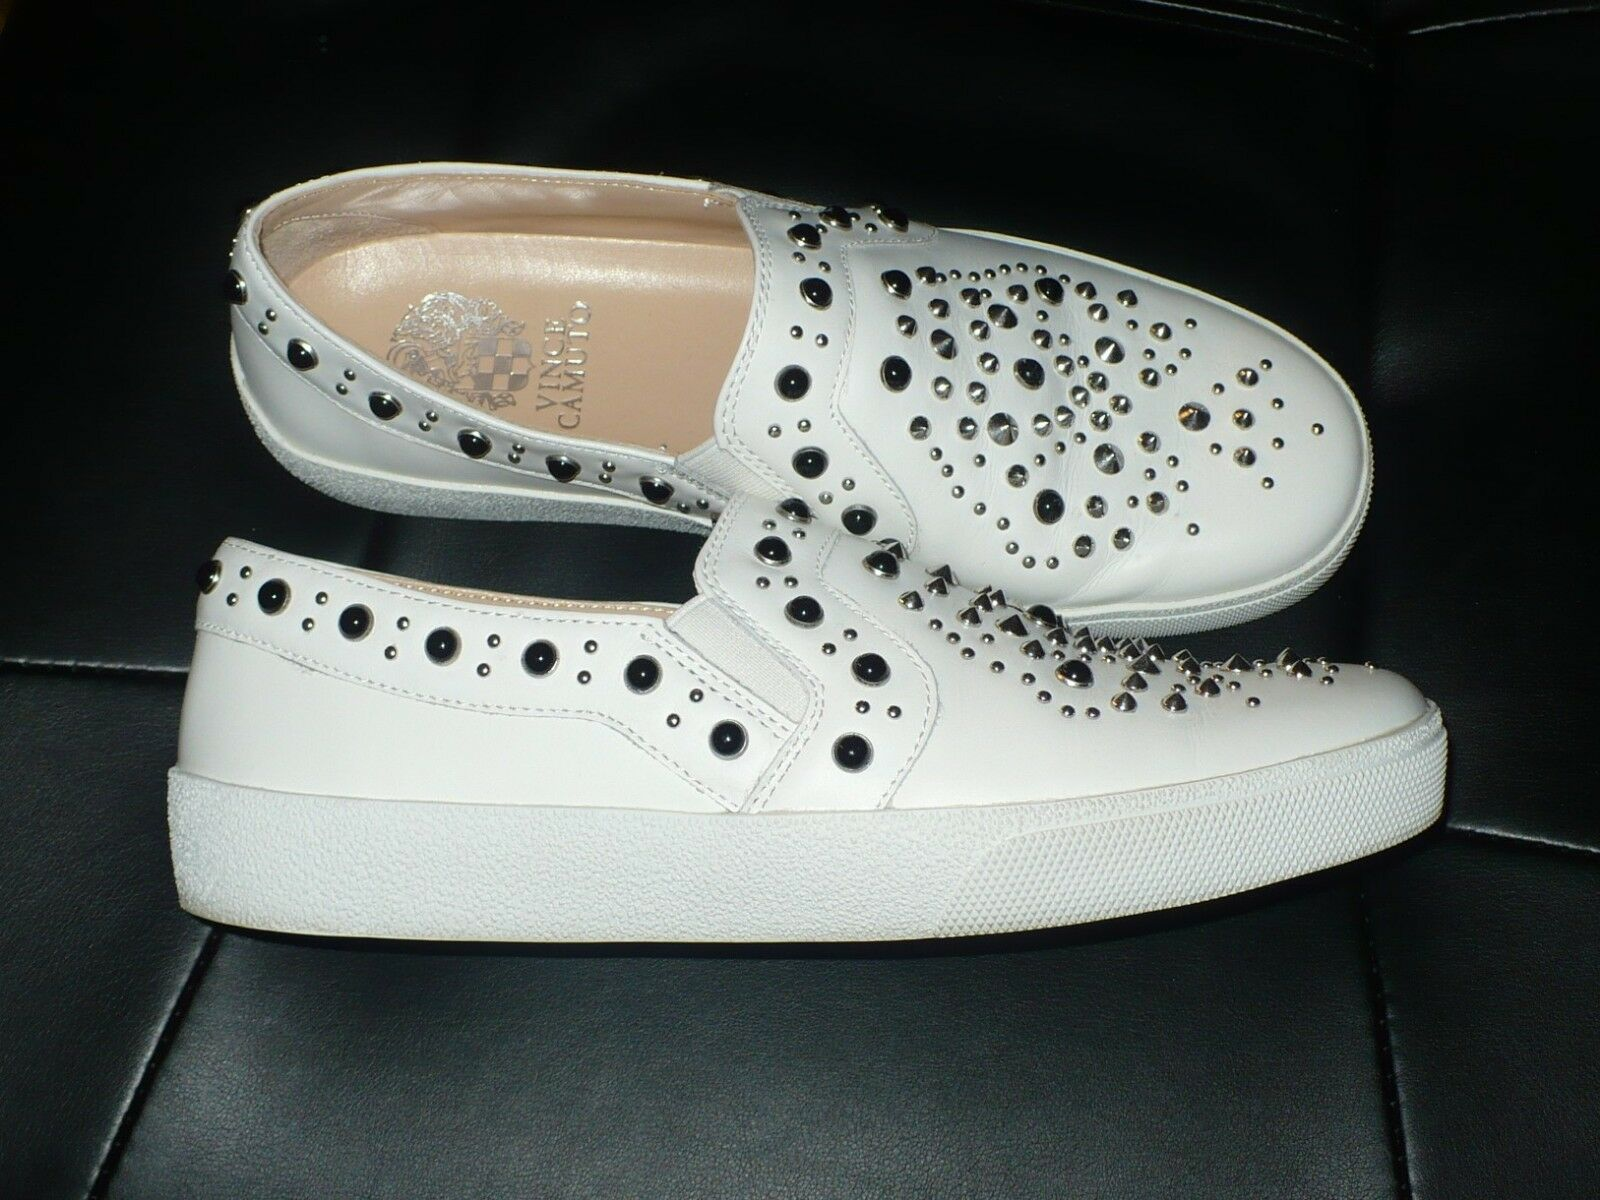 VINCE CAMUTO CASINTIA WEISS STUDDED LEATHER SLIP ON SNEAKER SZ. 7.5 VGC